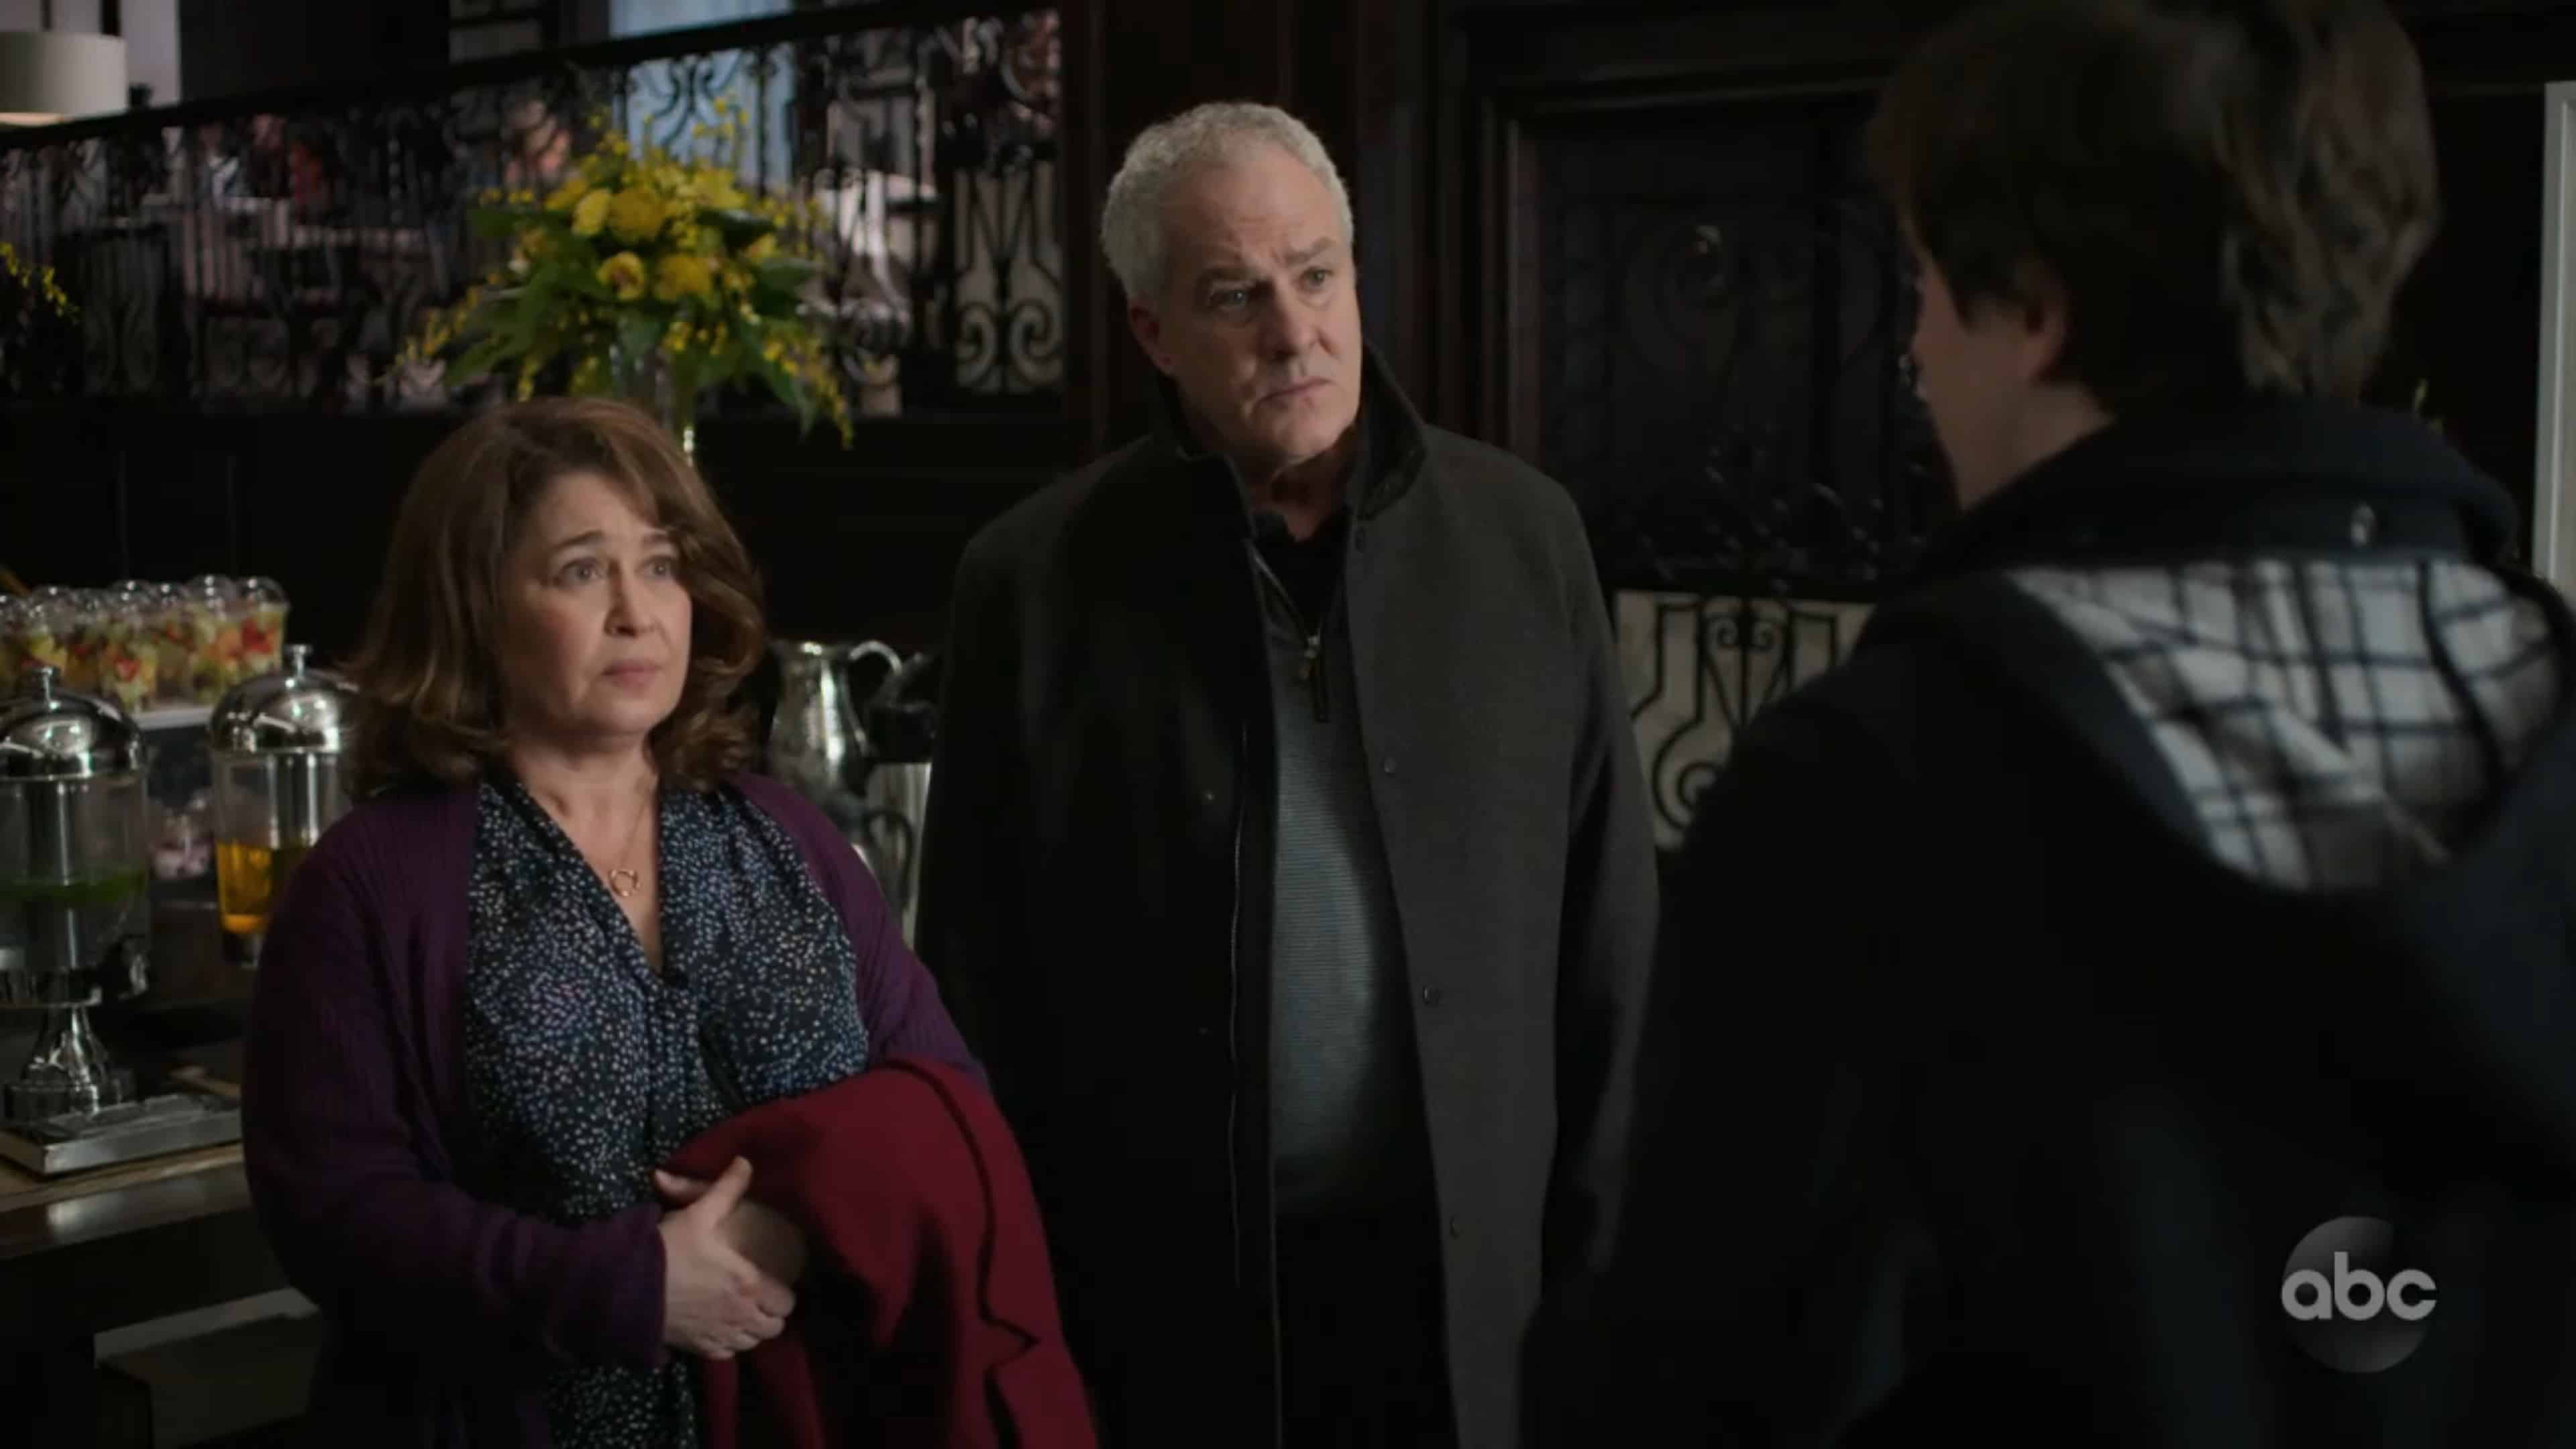 Pam (Julie Warner) and Mike (Barclay Hope), Lea's parents